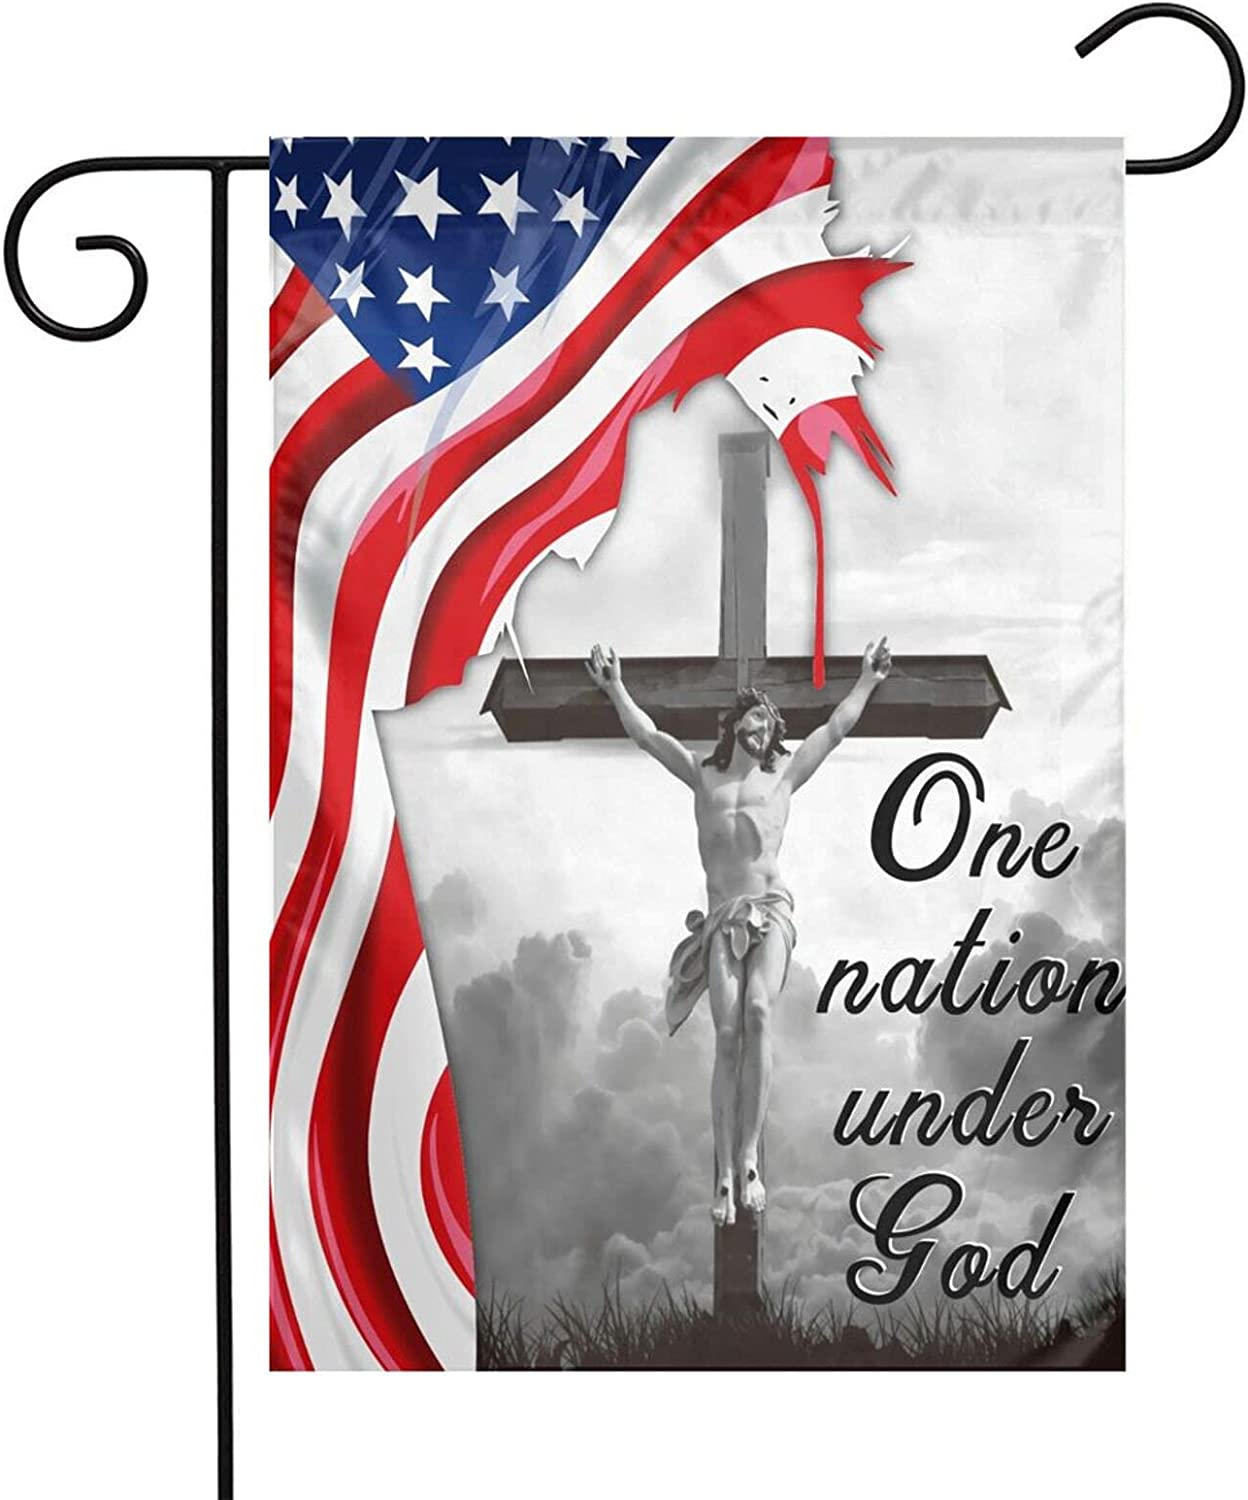 TFDXIH One Nation Under God Jesus Christian Cross Flag 12 x18 Inch American Flags Yard Decor for Home Decorative Yard Deluxe Outdoor Banner